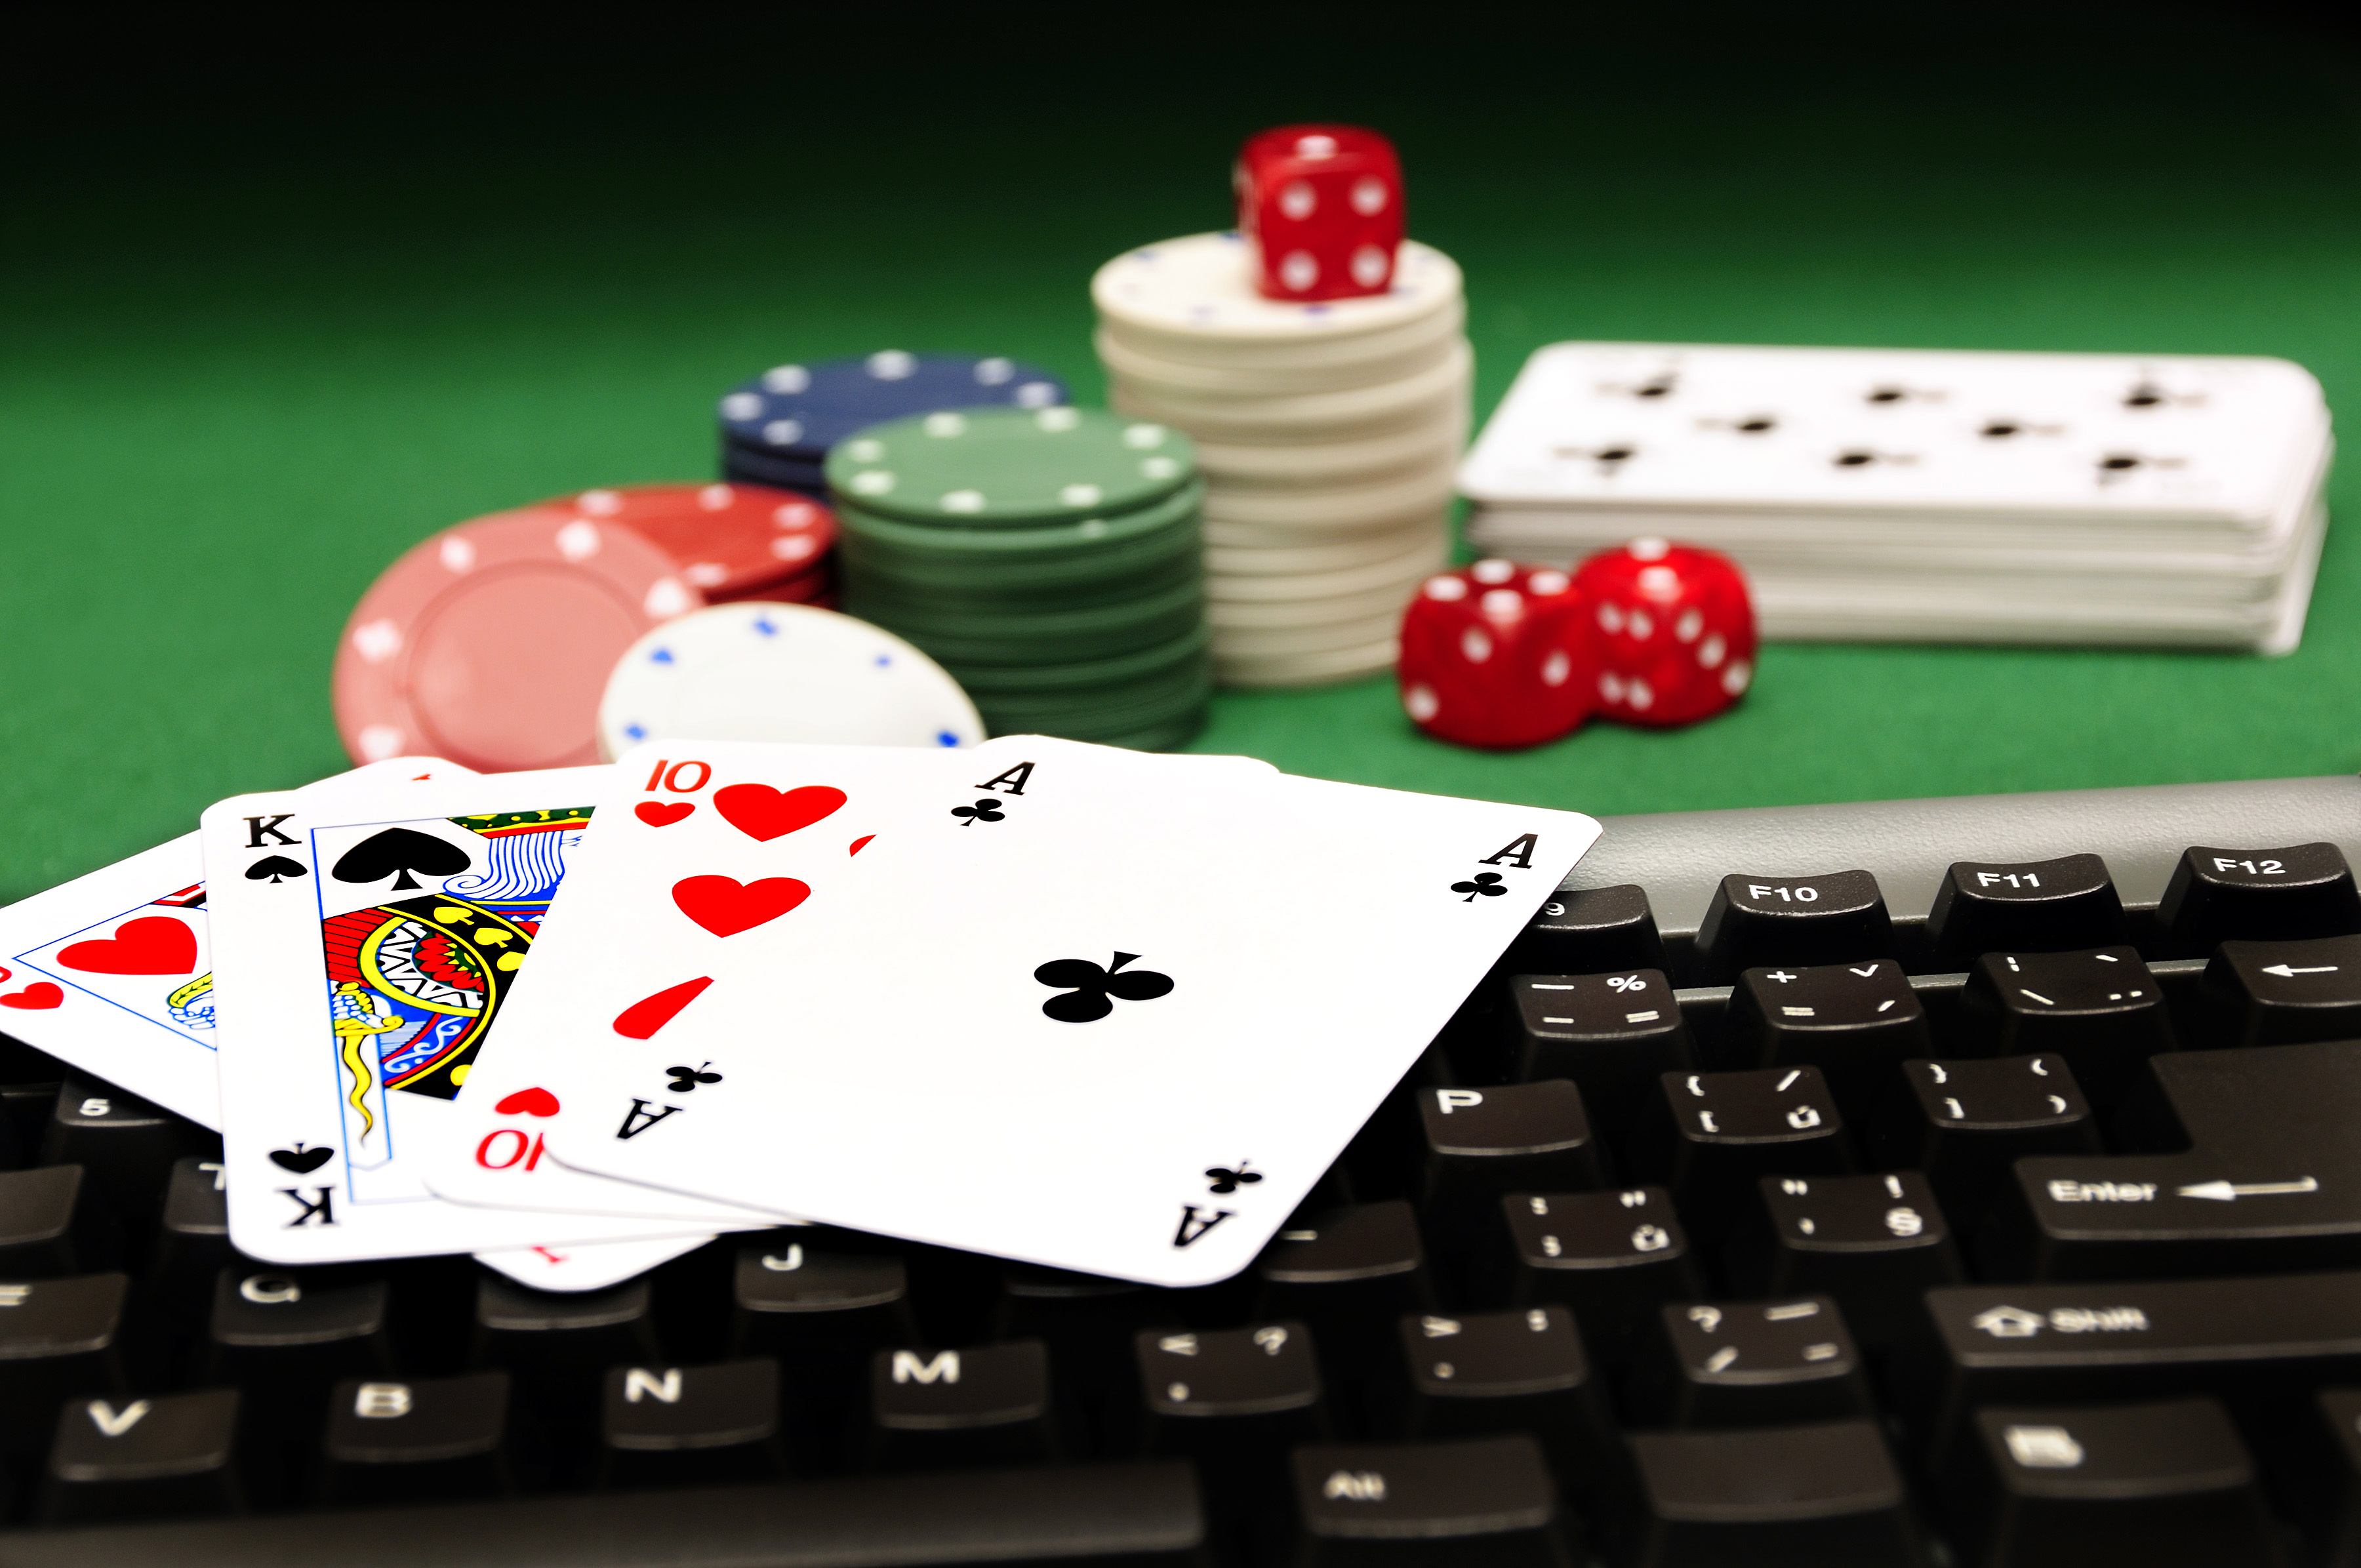 Top 5 Types Of Fraud In Online Gambling